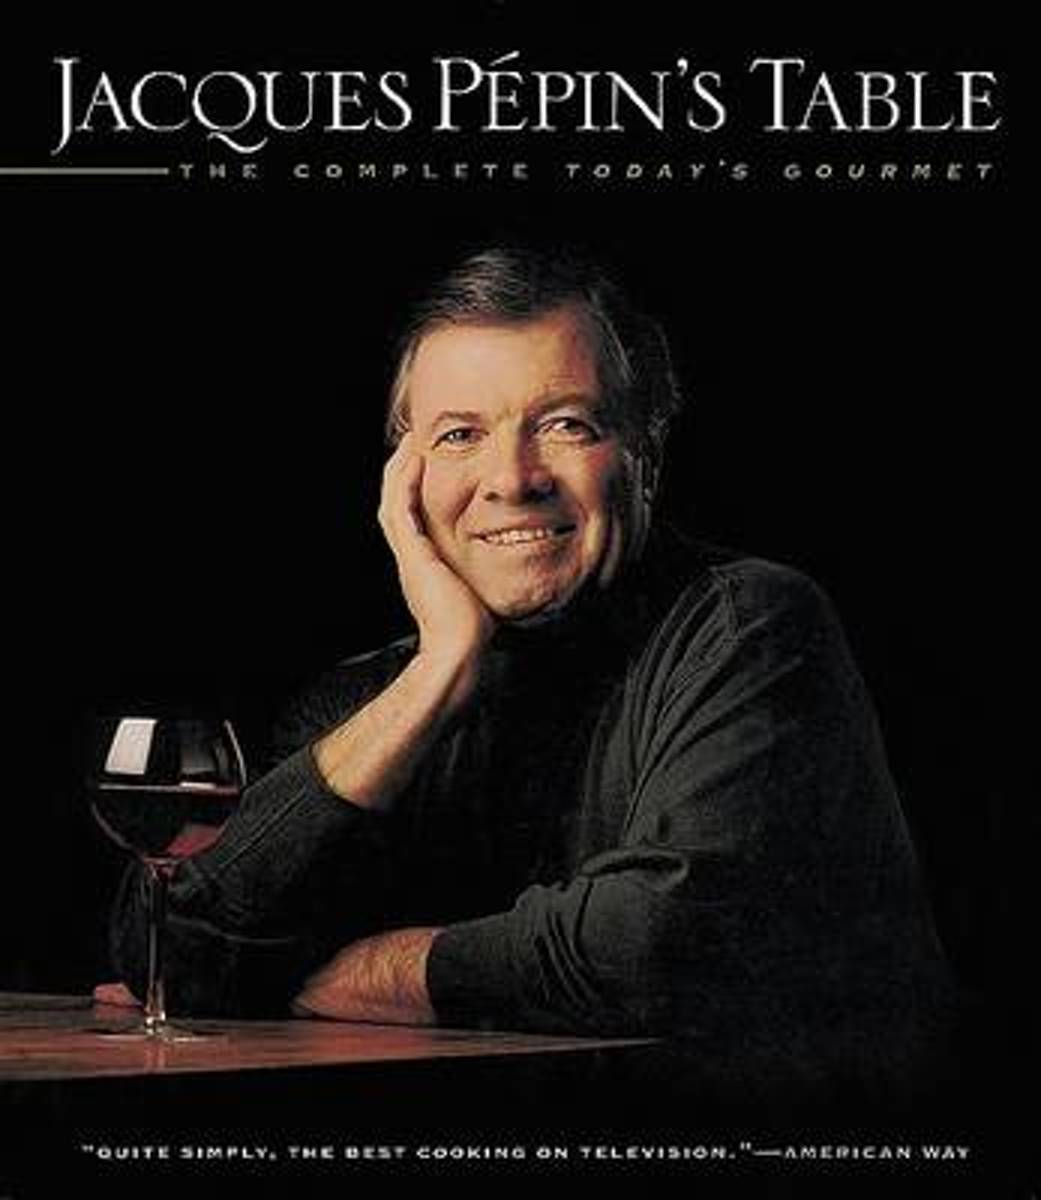 Jacques Pepin's Table